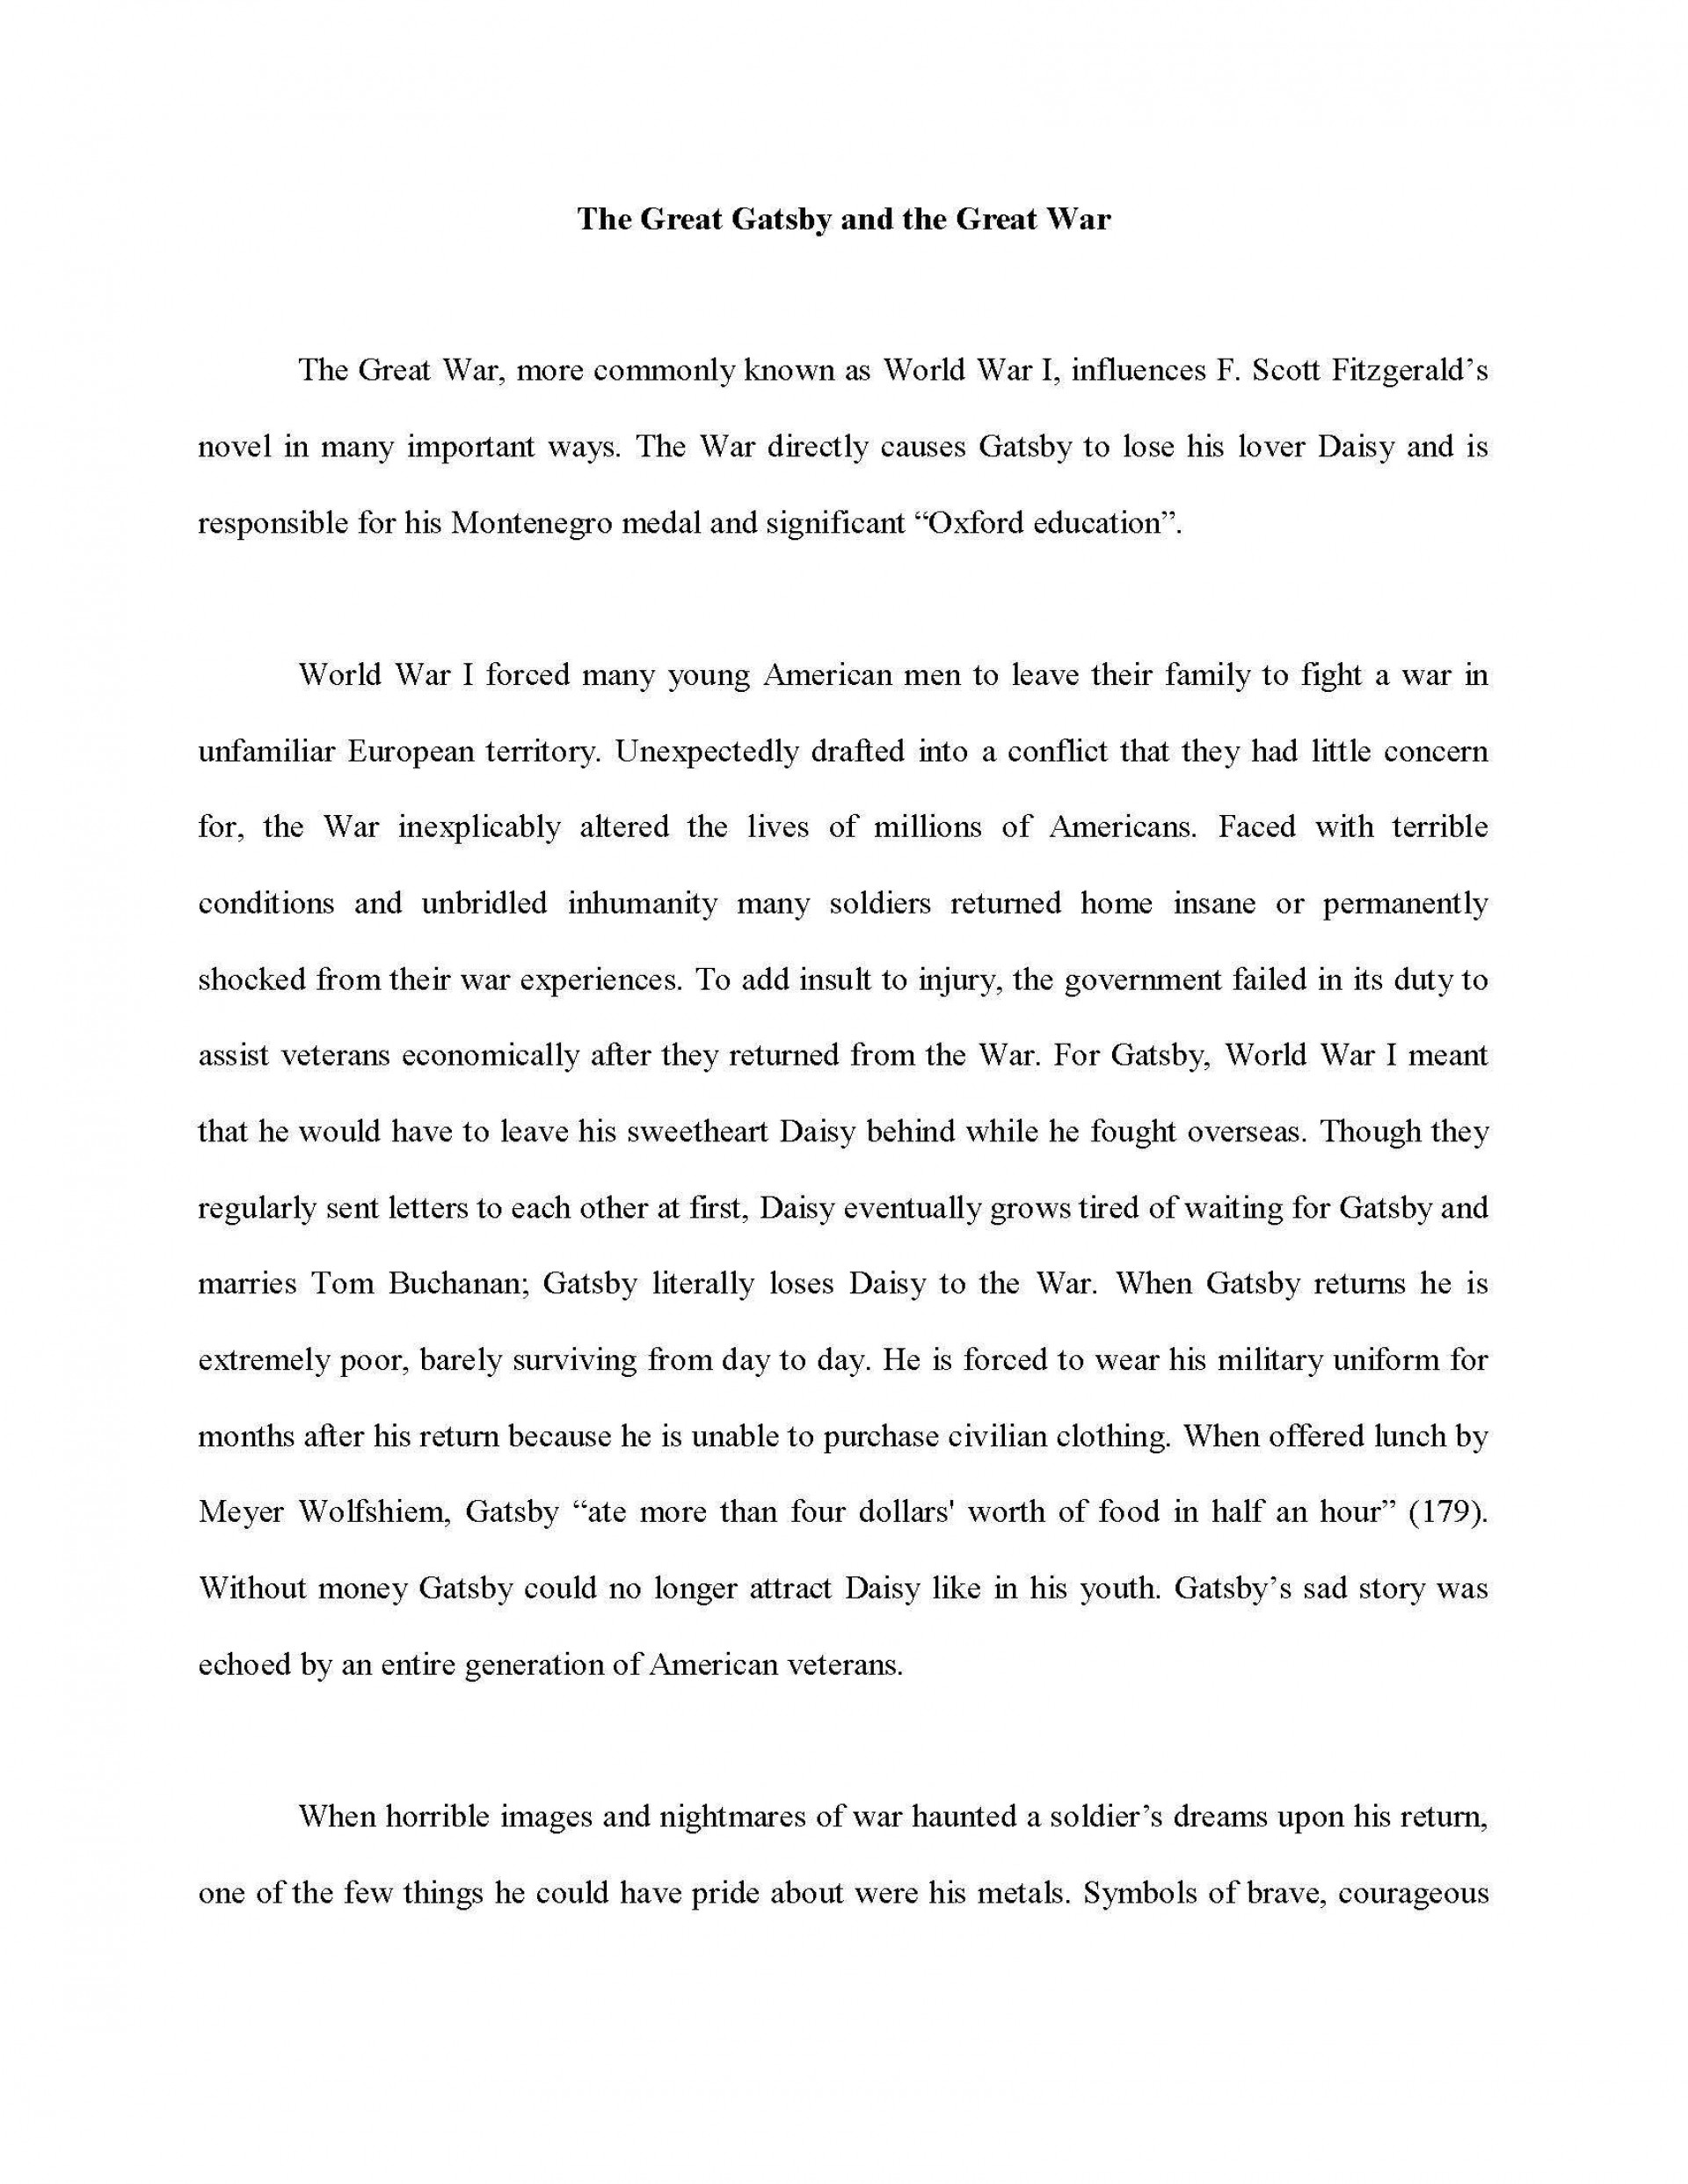 007 Informative Essay Sample Example How To Write Dreaded A Introduction Good Thesis For An 1920